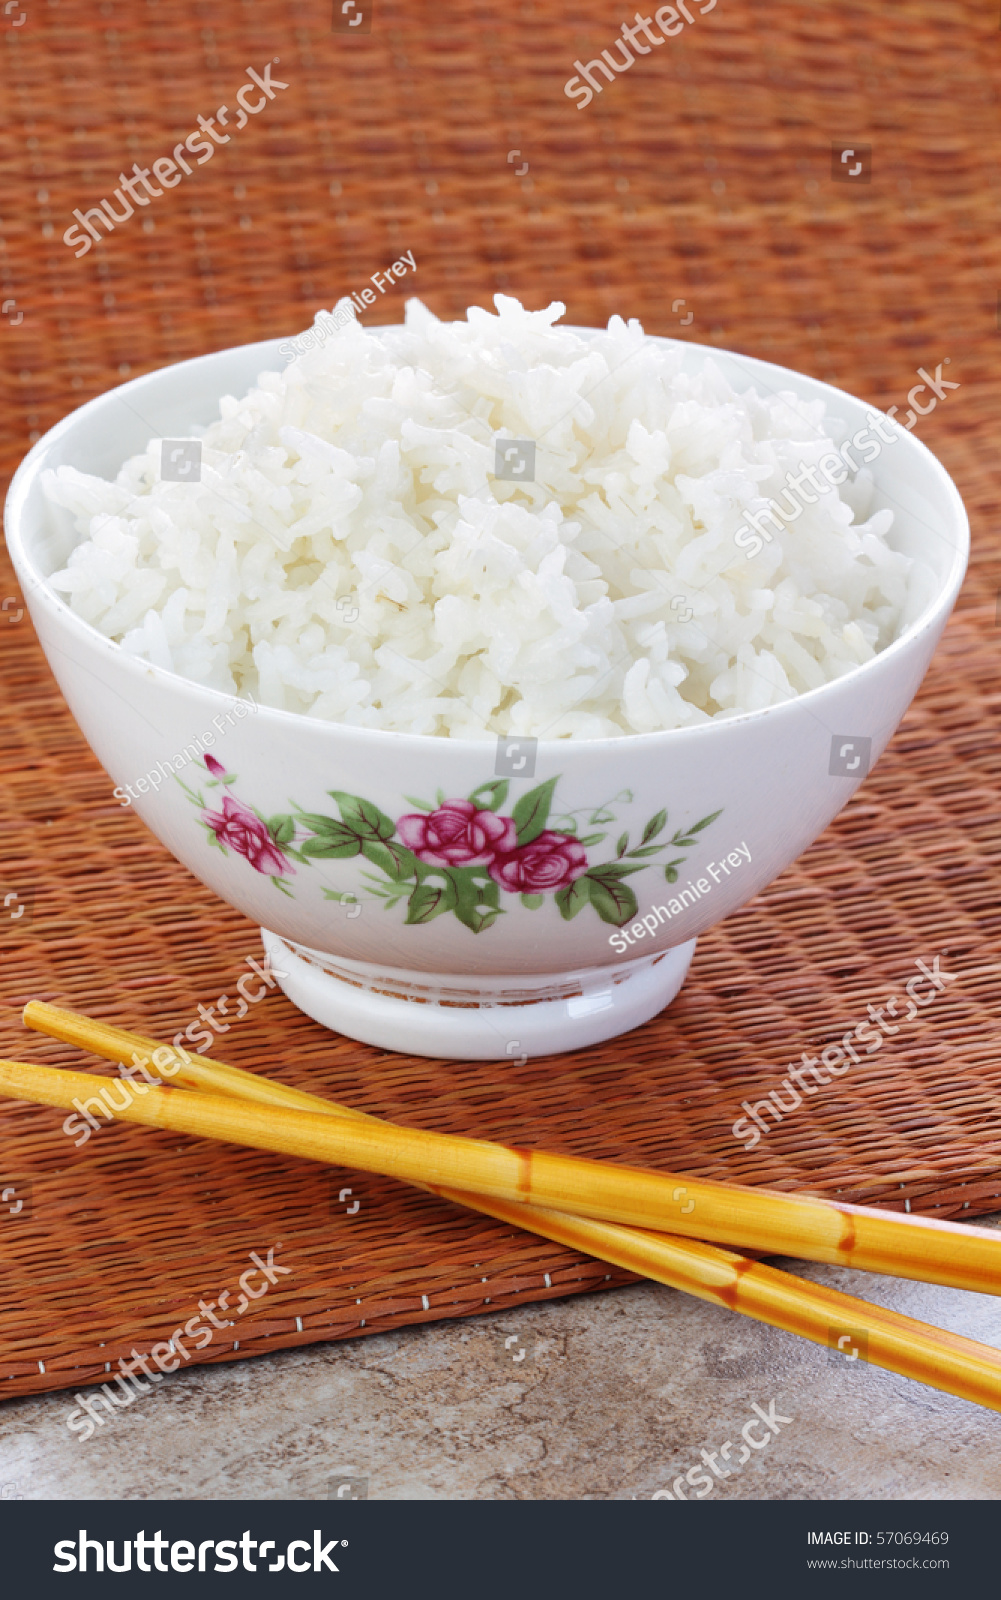 Bowl Of Prepared White Rice With Chopsticks. Stock Photo ...